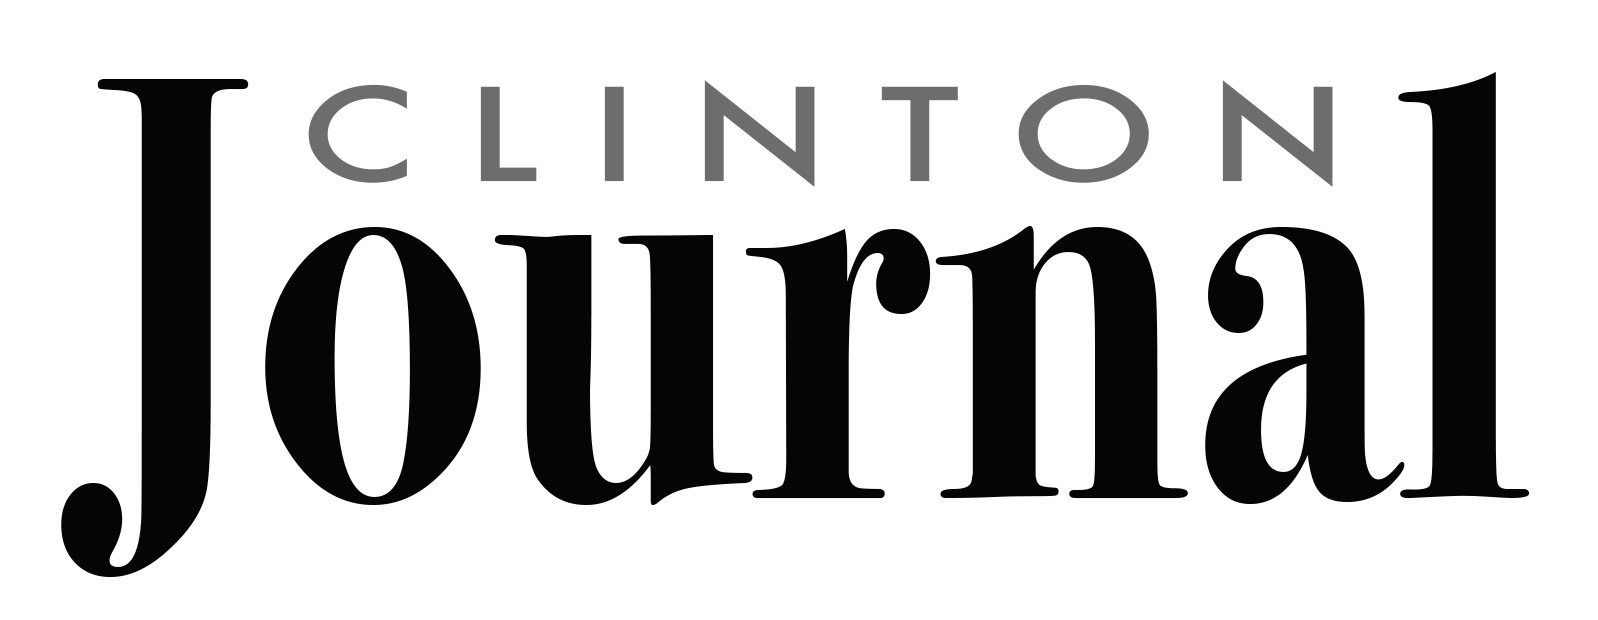 Clinton Journal